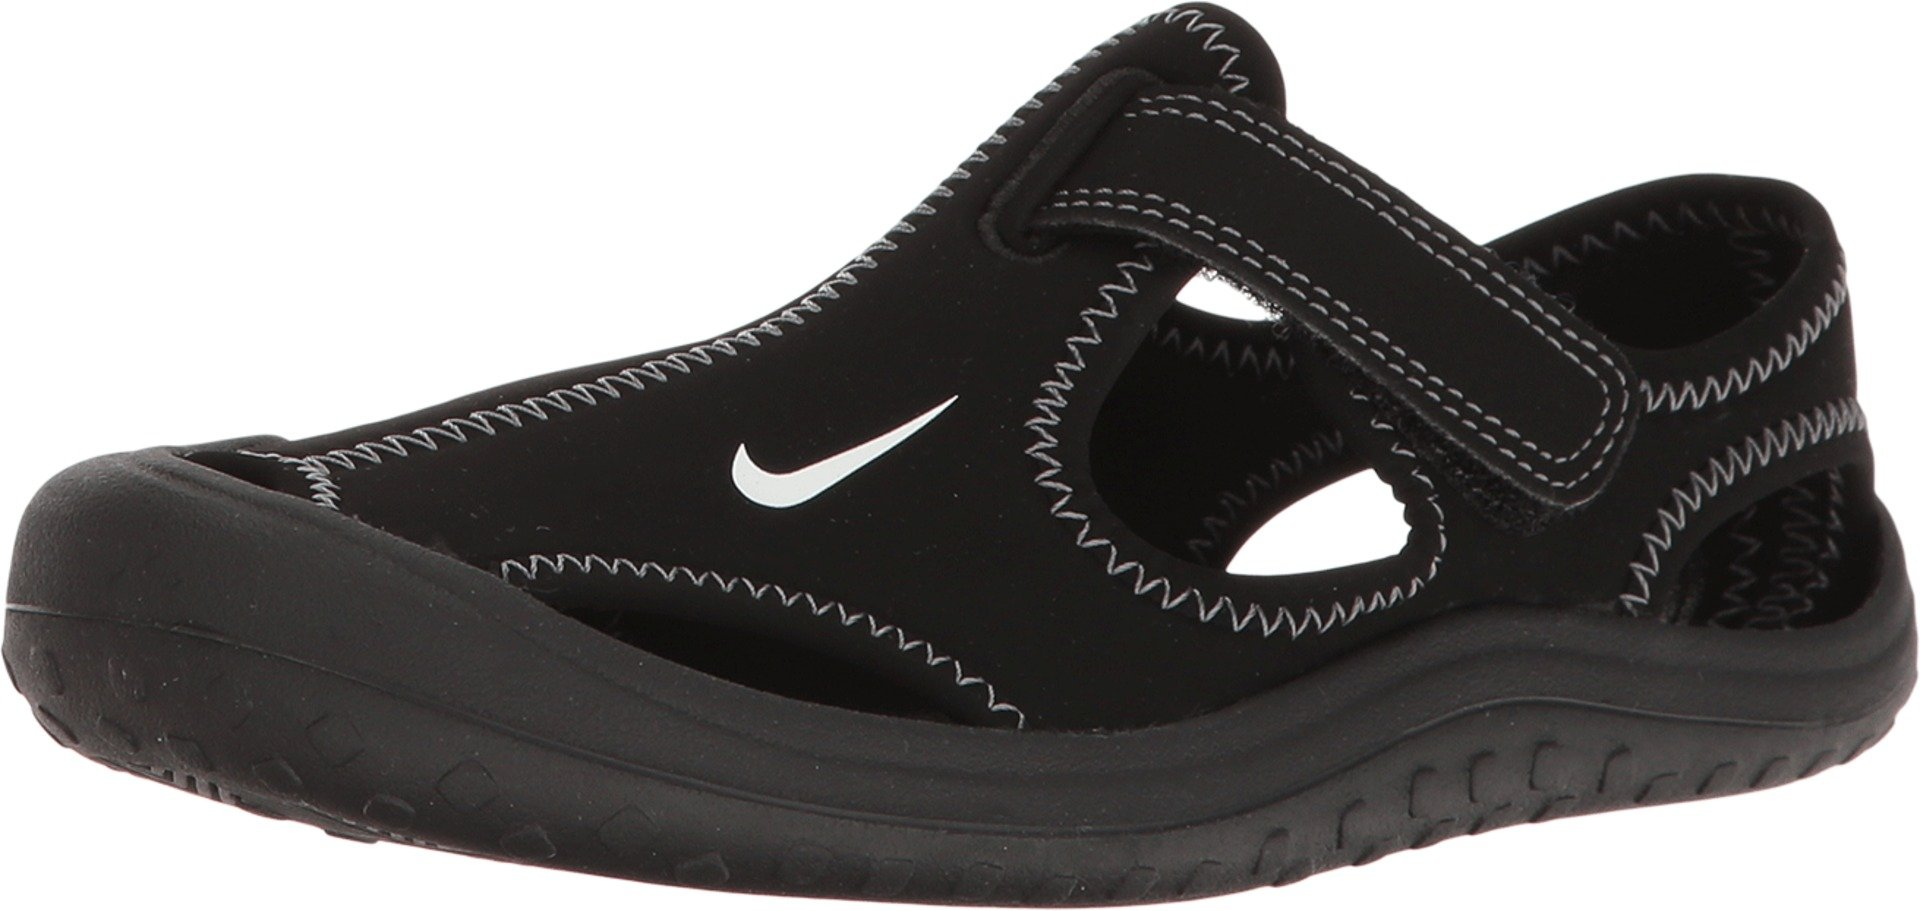 Nike Sunray Protect (PS) Little Kid's Shoes Black/White/Dark Grey 903631-001 (1 M US)